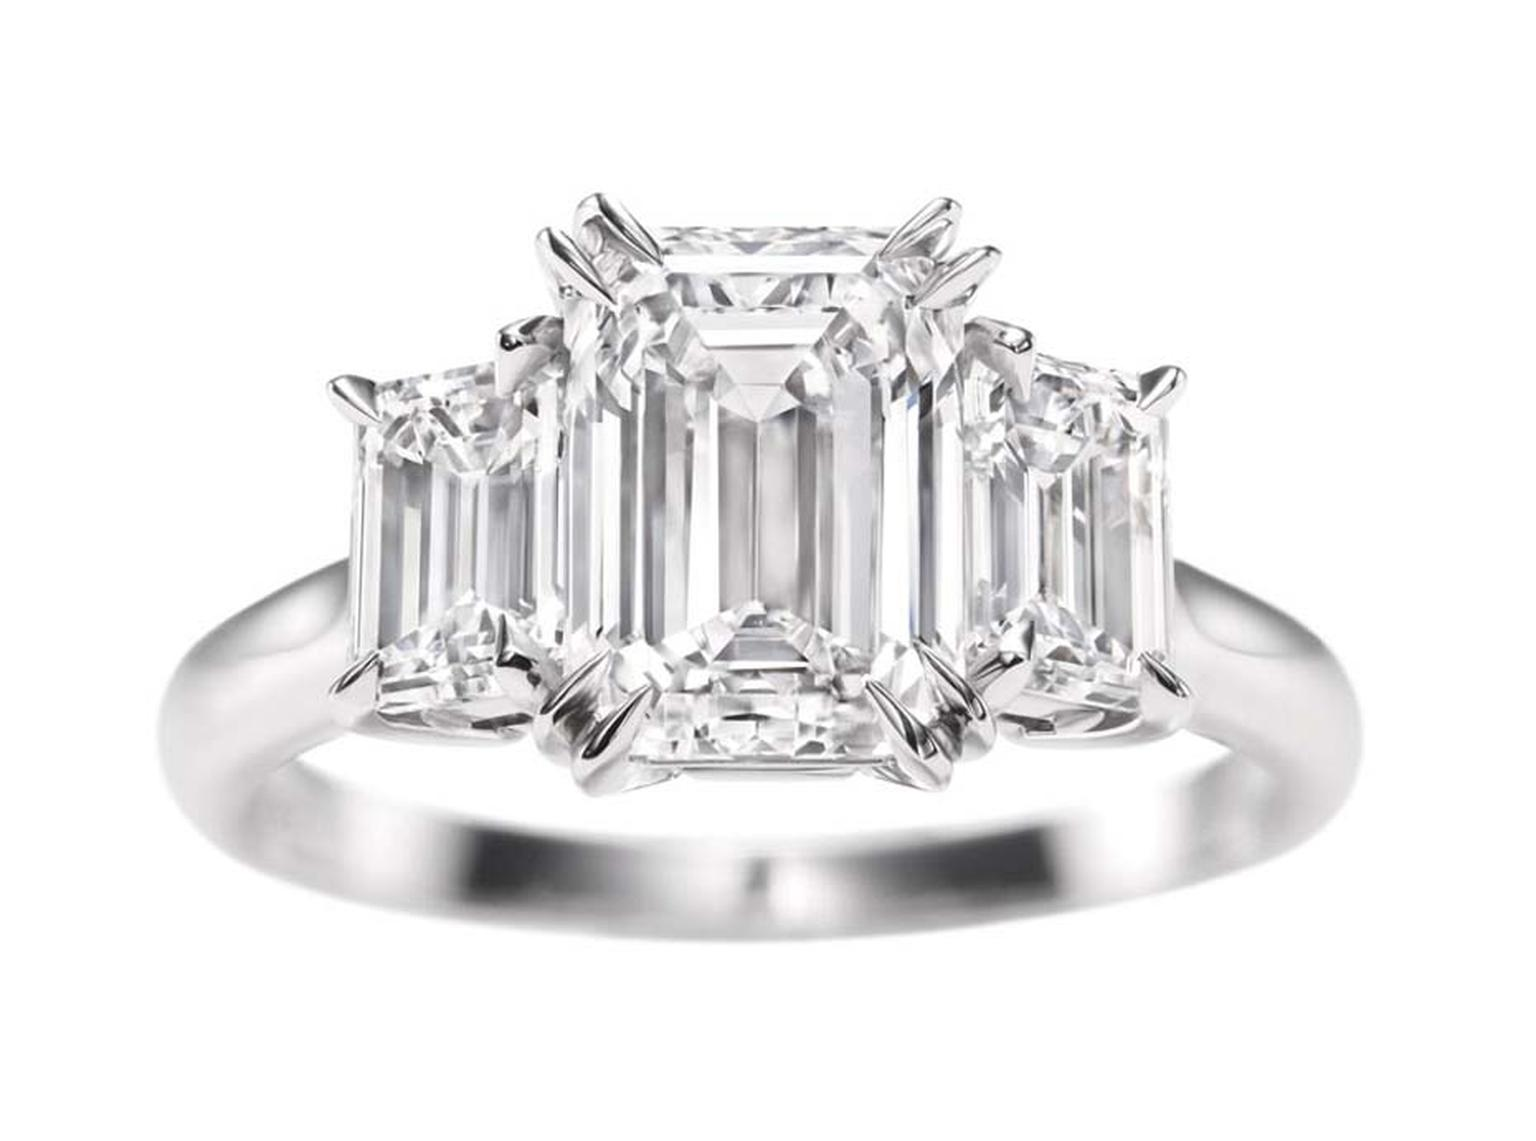 Harry Winston emerald-cut three stone diamond engagement ring.